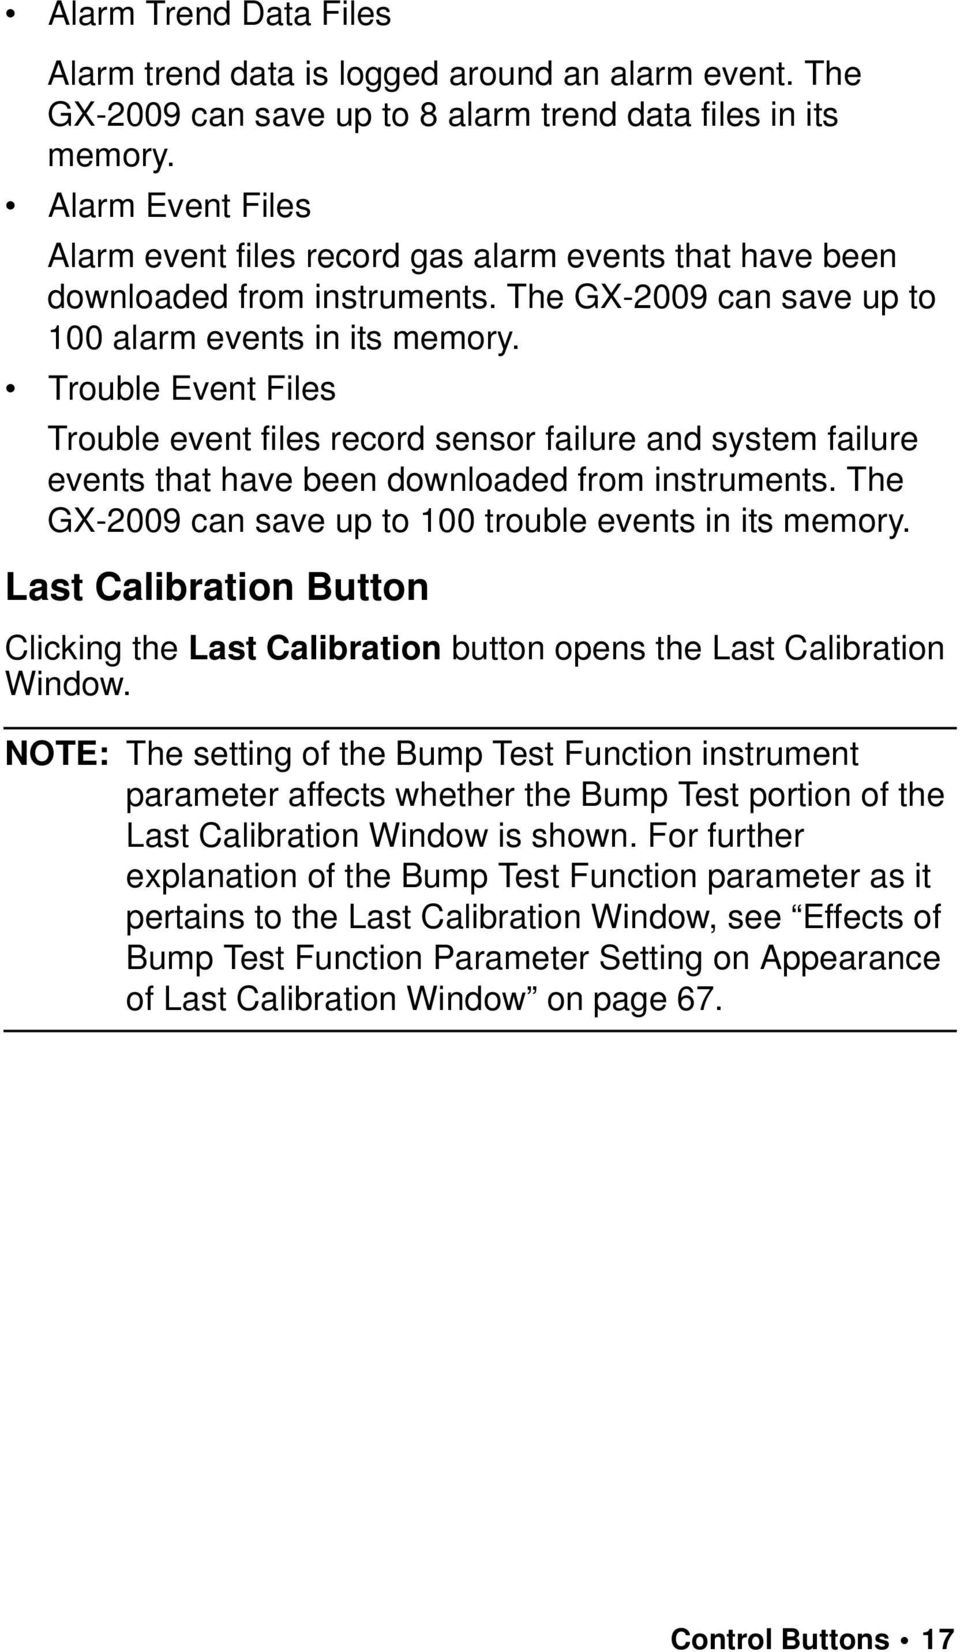 Trouble Event Files Trouble event files record sensor failure and system failure events that have been downloaded from instruments. The GX-2009 can save up to 100 trouble events in its memory.